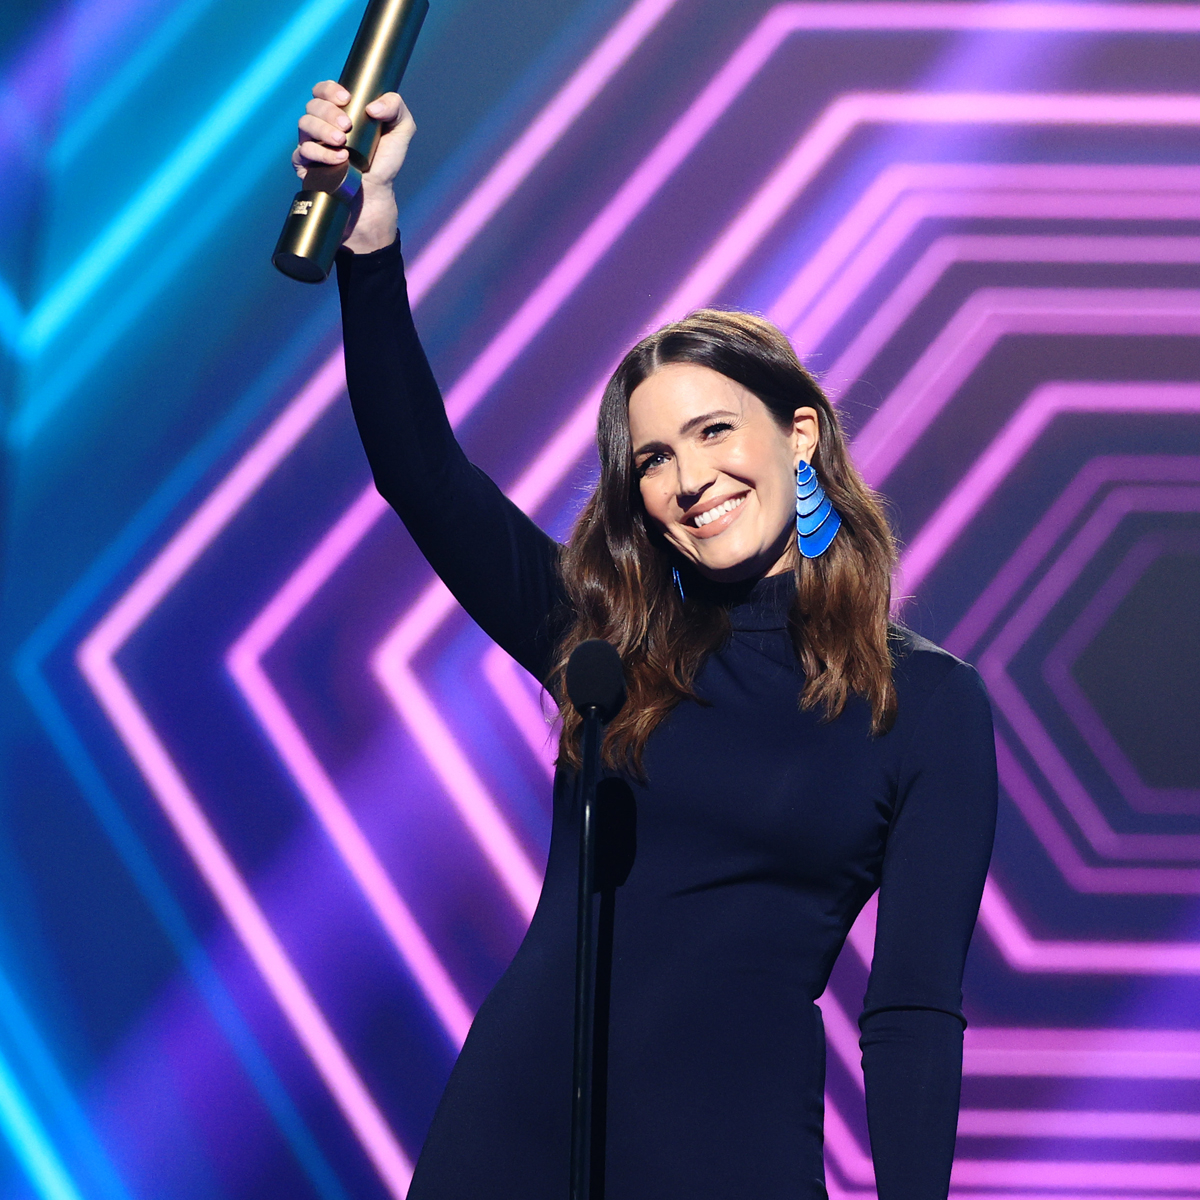 People's Choice Awards 2020 Winners: The Complete List